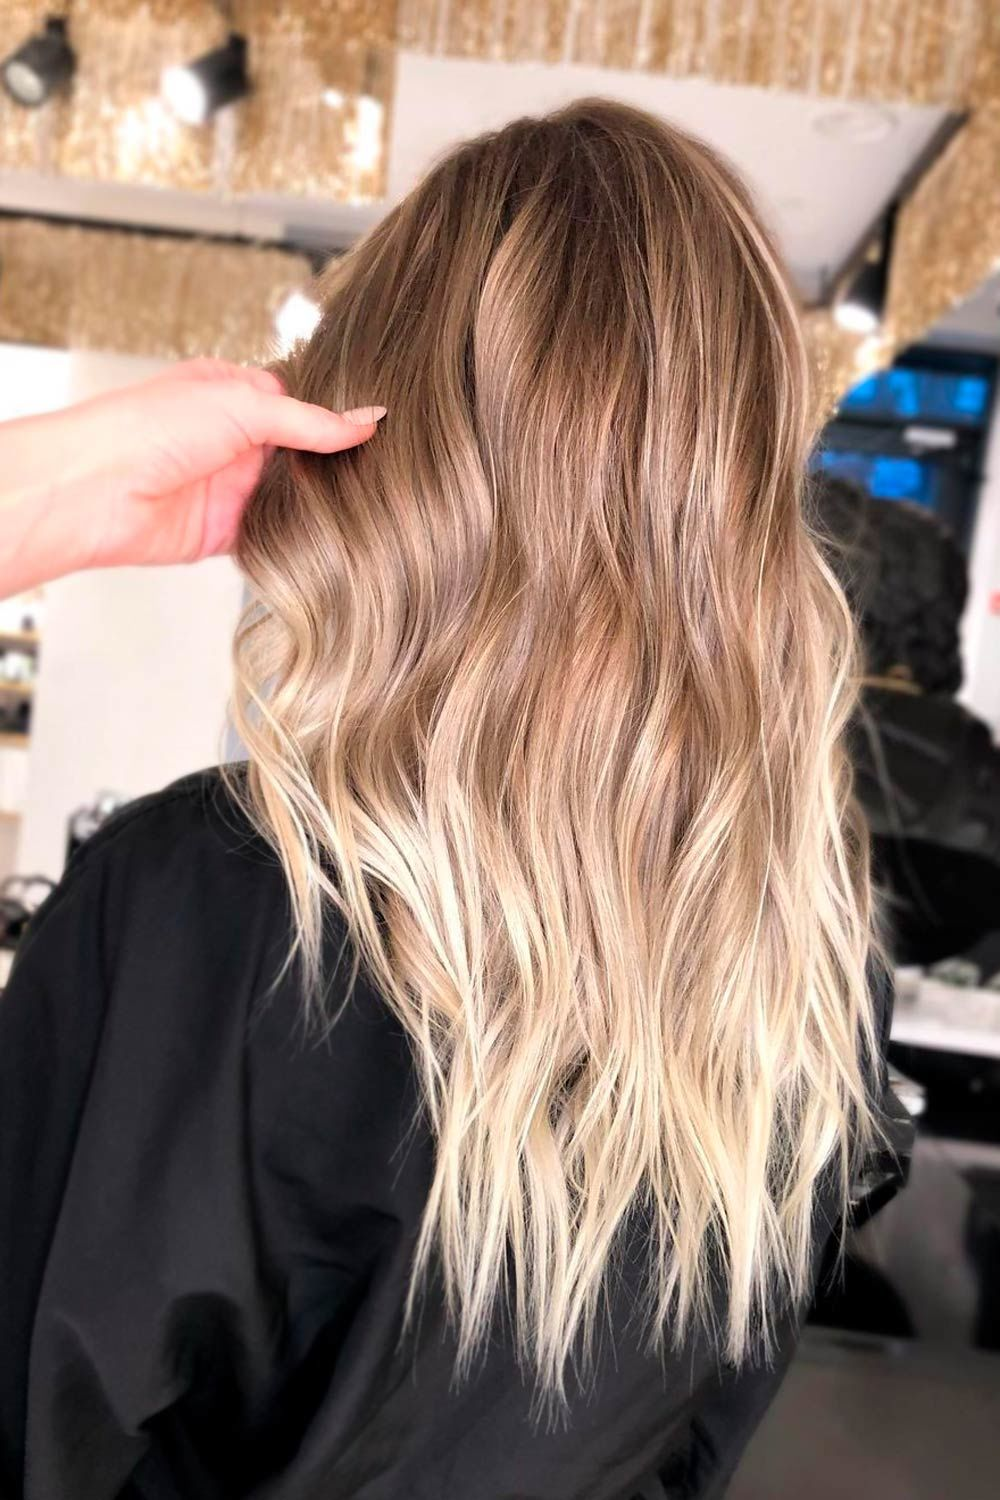 U-Shaped Cut With Classic Layers